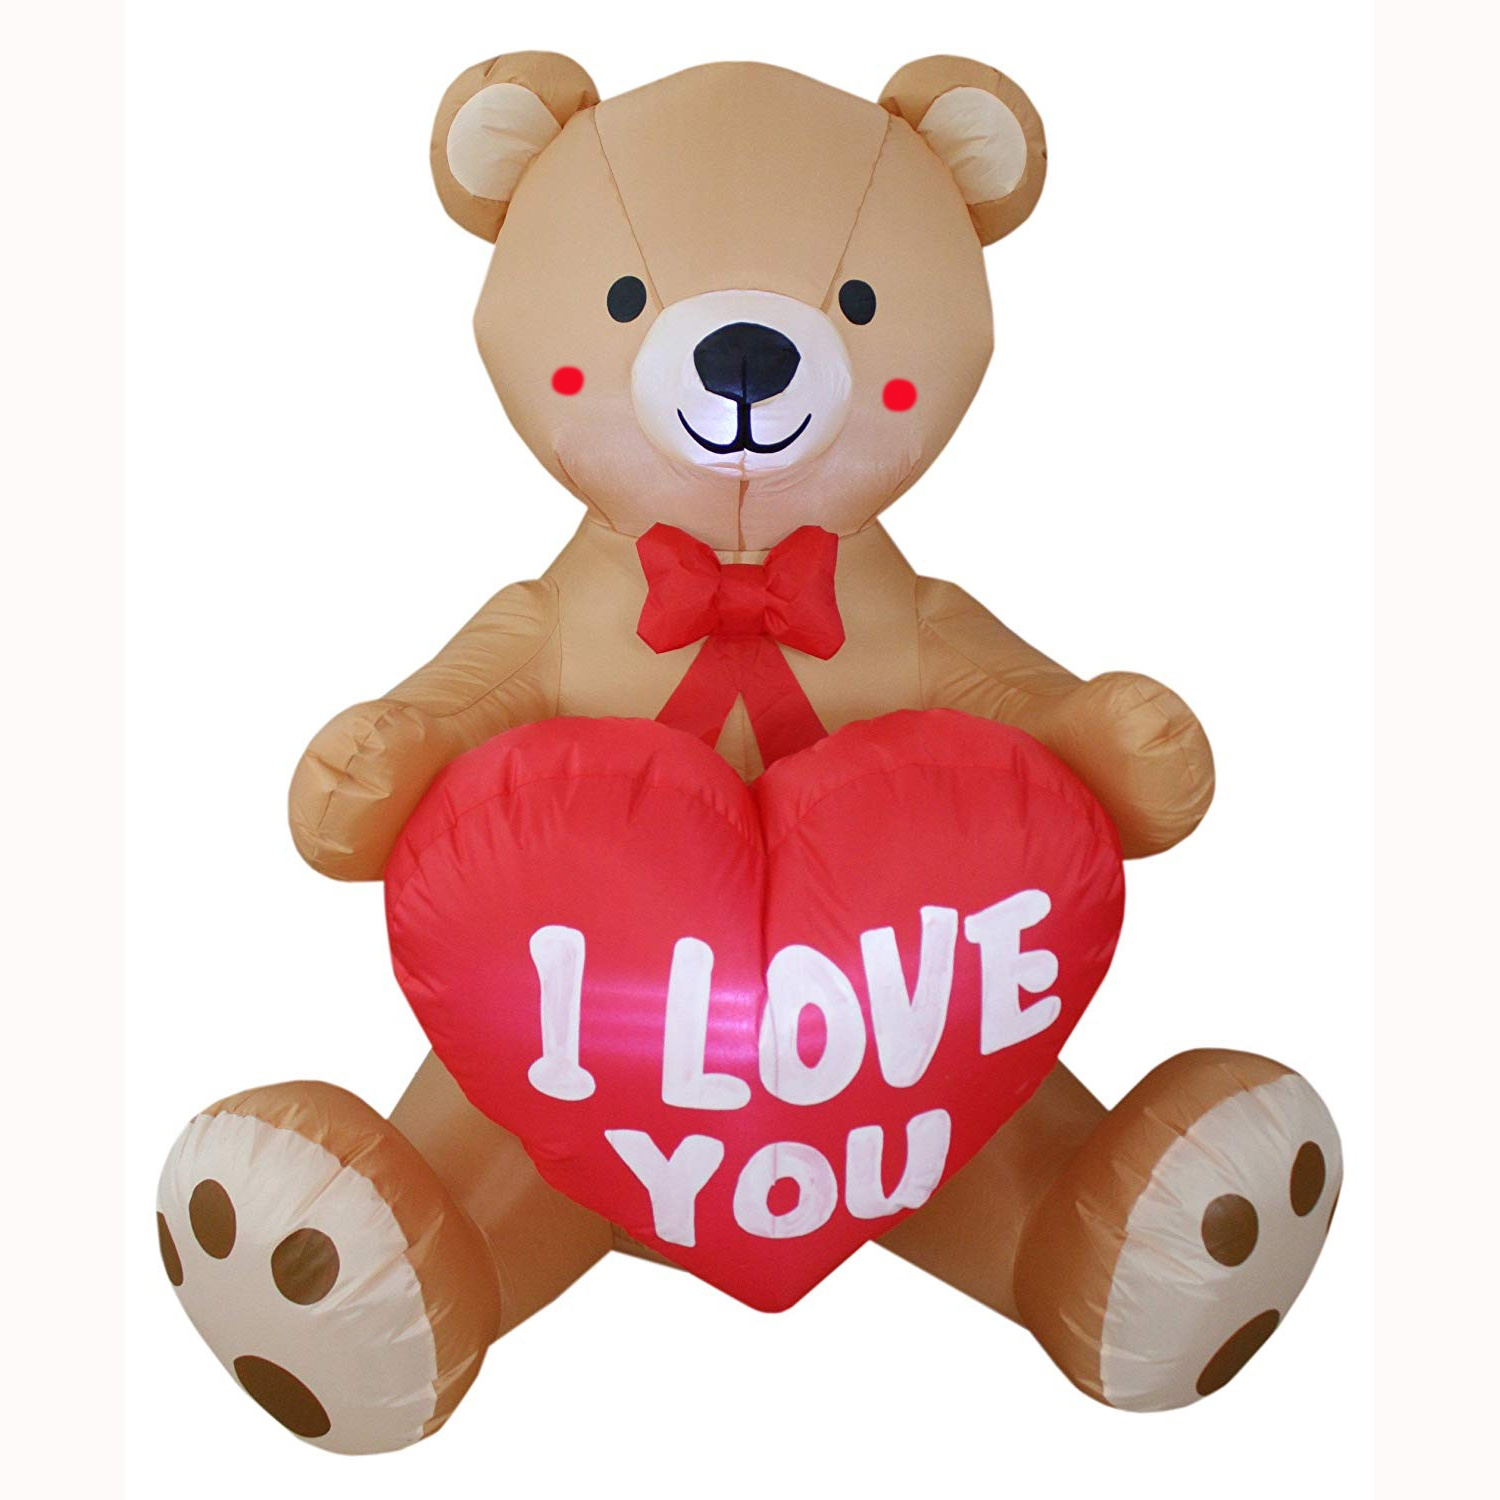 Inflatable LOVE bears decorating outdoors/indoors for valentine's day